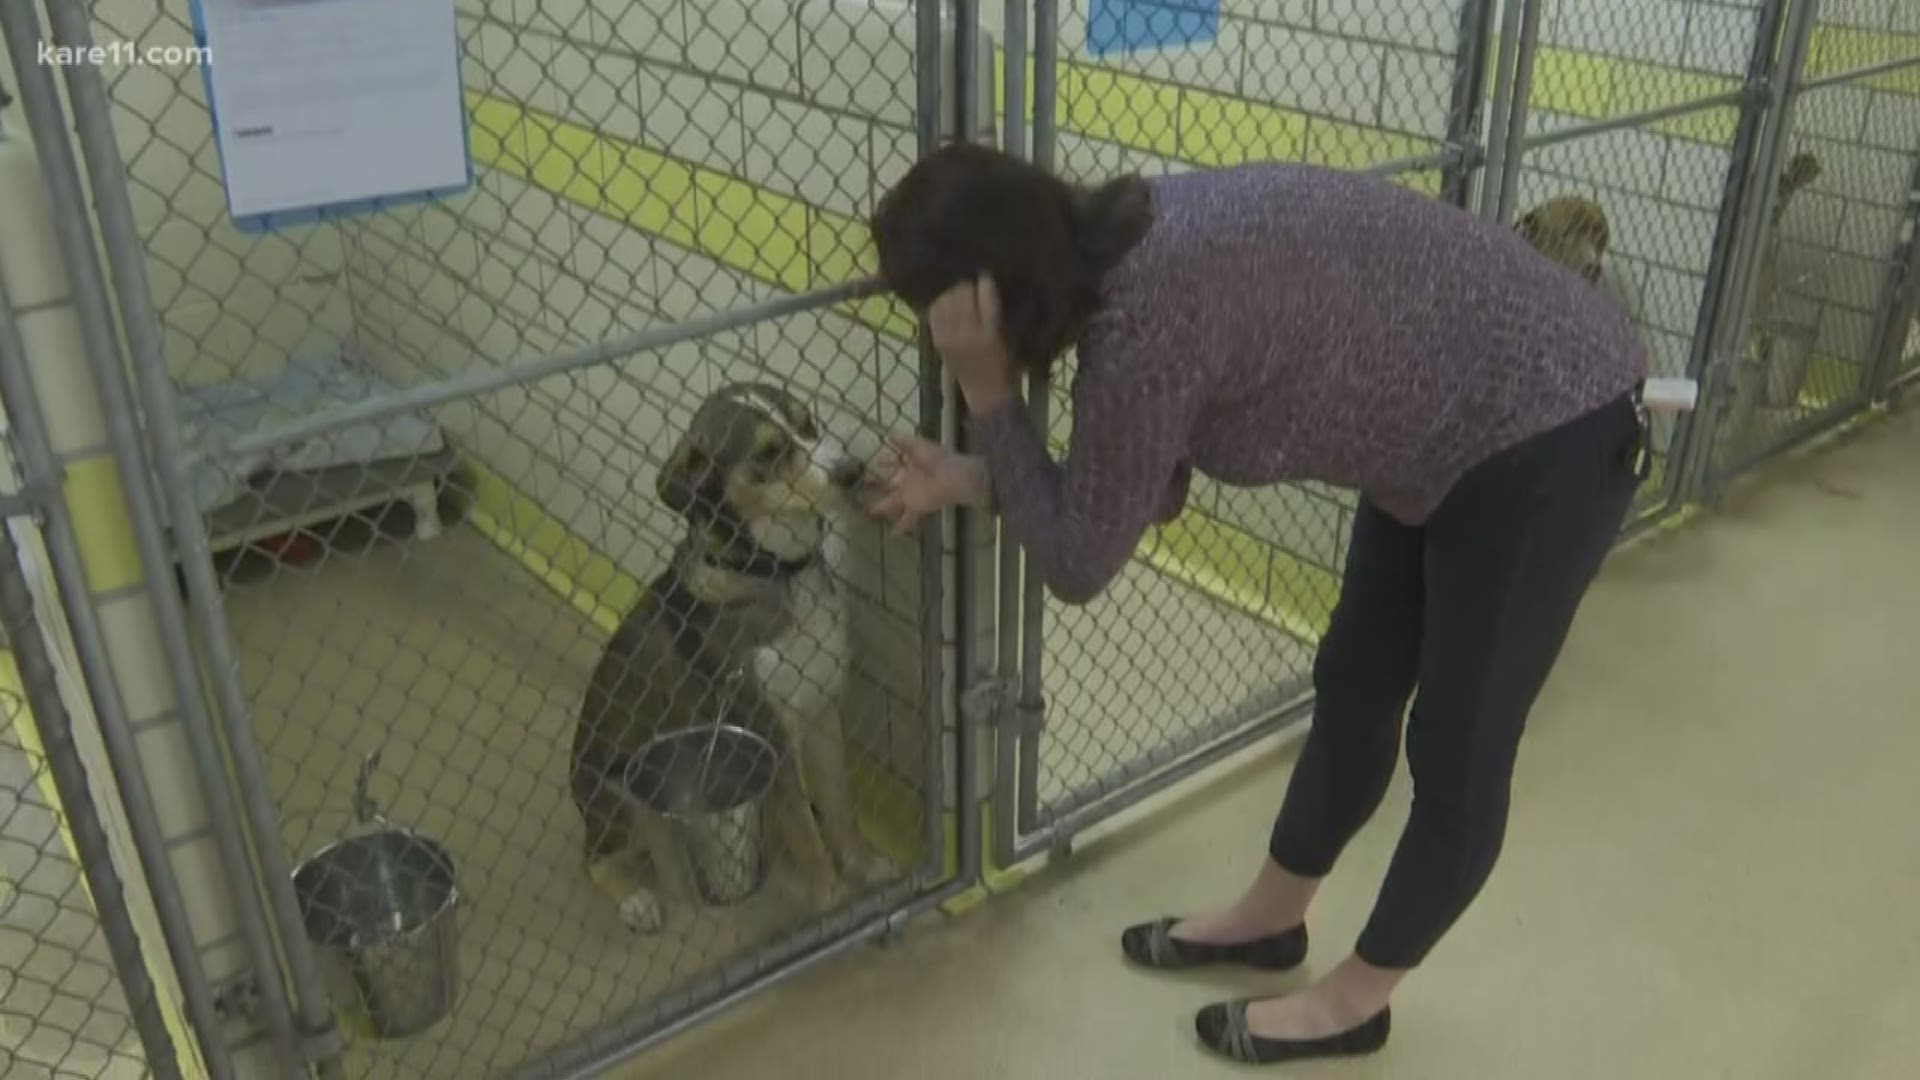 St Paul Animal Humane Society Closing Donations Needed Kare11 Com